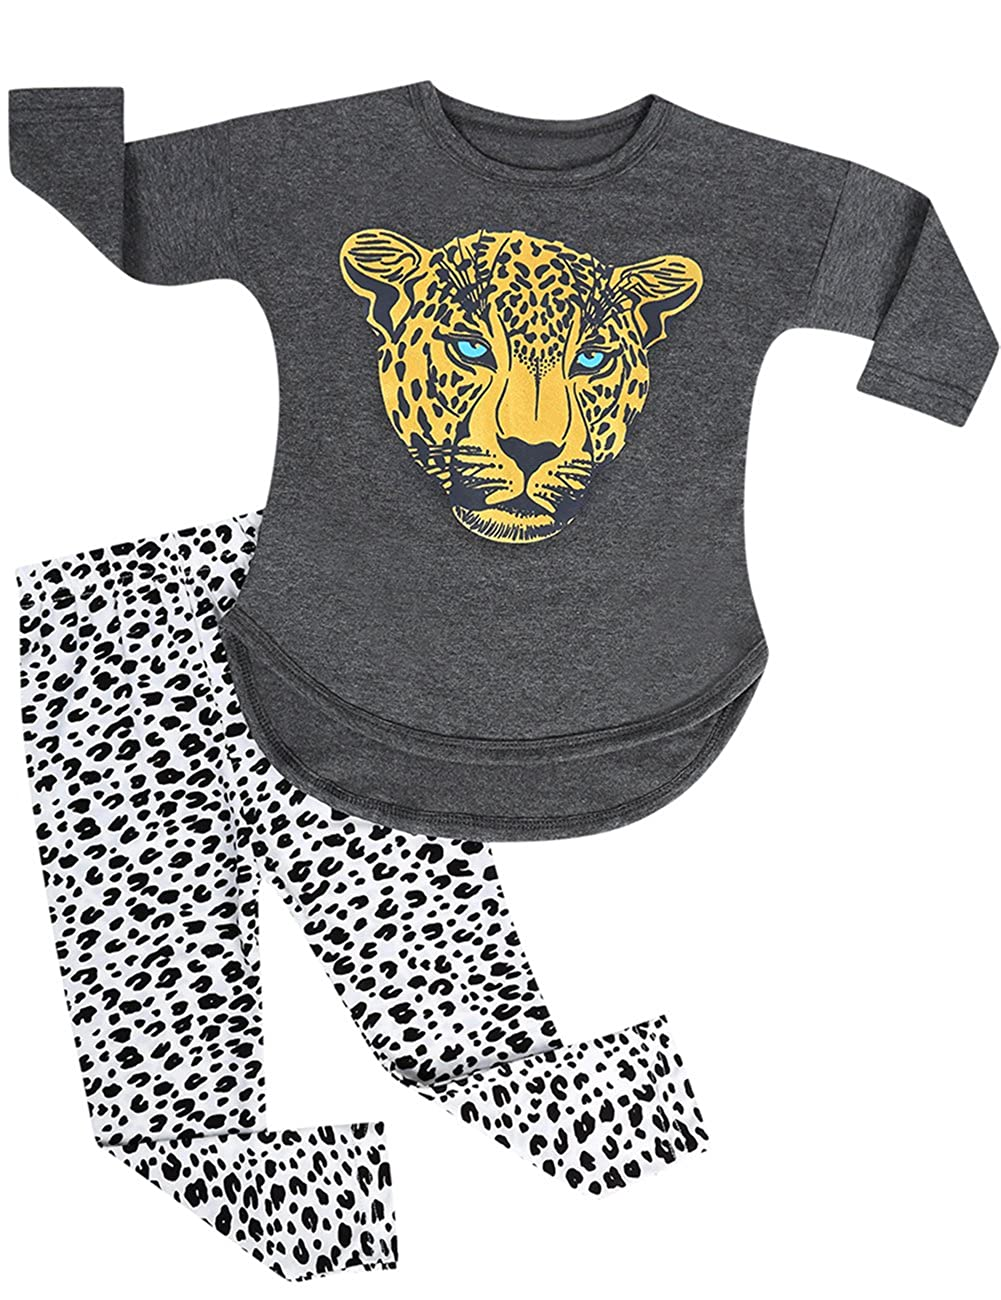 Kidlove Kids Girls Leopard Pattern Tops +Pants Leggings Casual Clothes Set Daily Wear BY483406KSTP